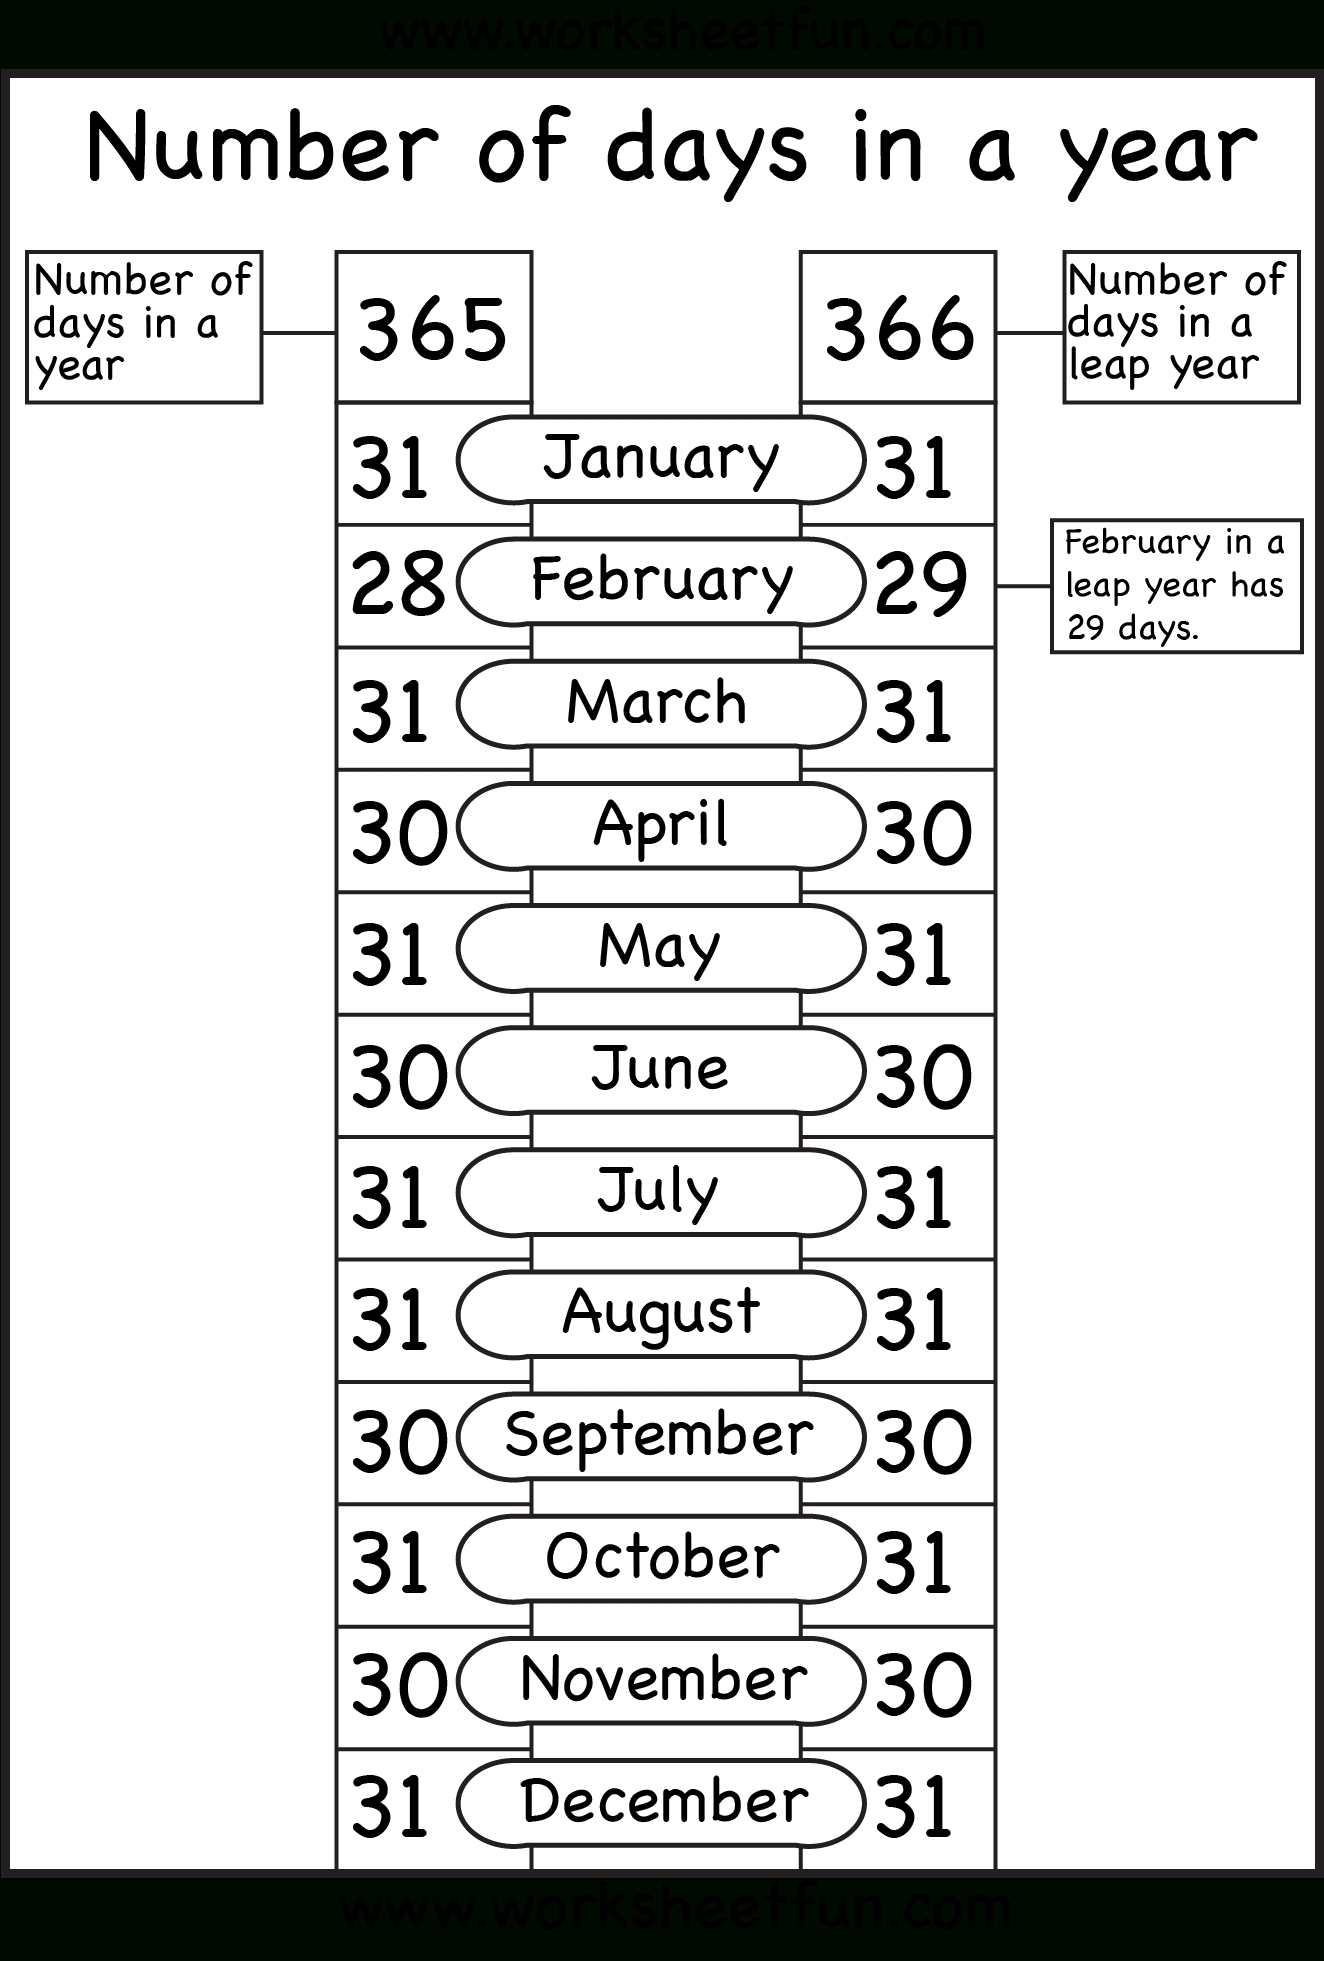 Months Of The Year - Number Of Days In A Year | English